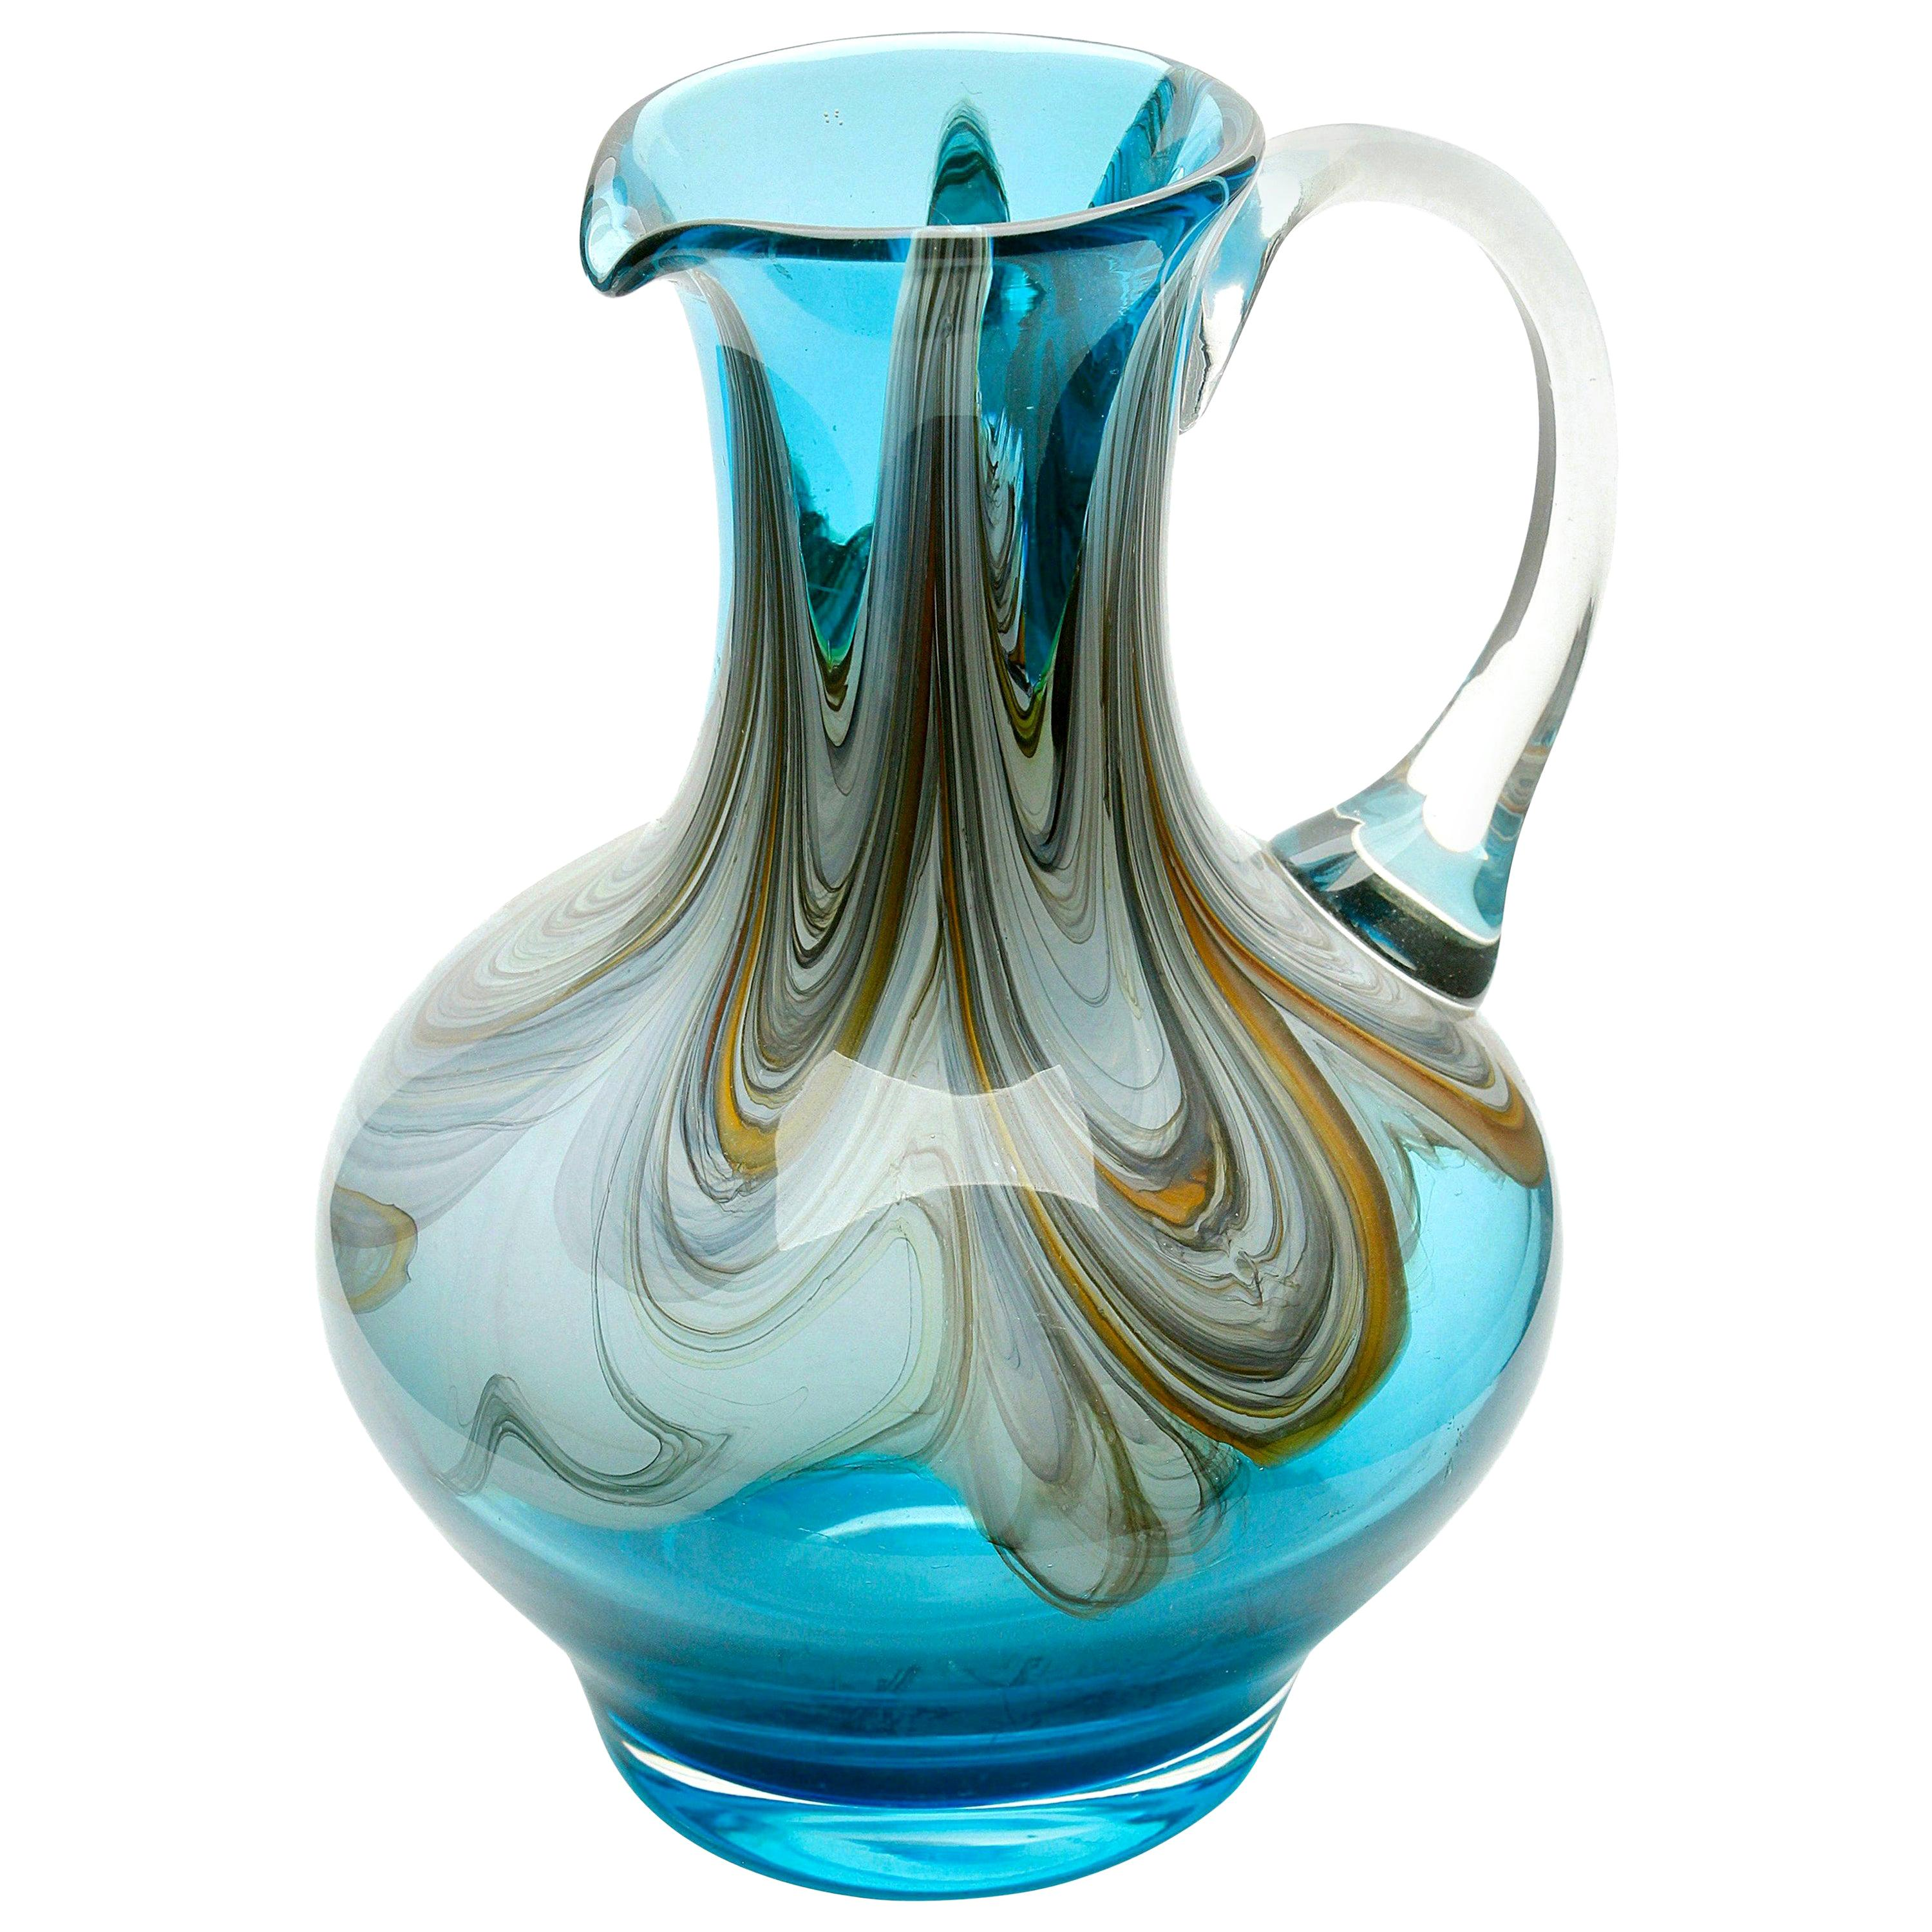 Hand Blown Handle Art Glass Pitcher with Agate-Colored Swirls